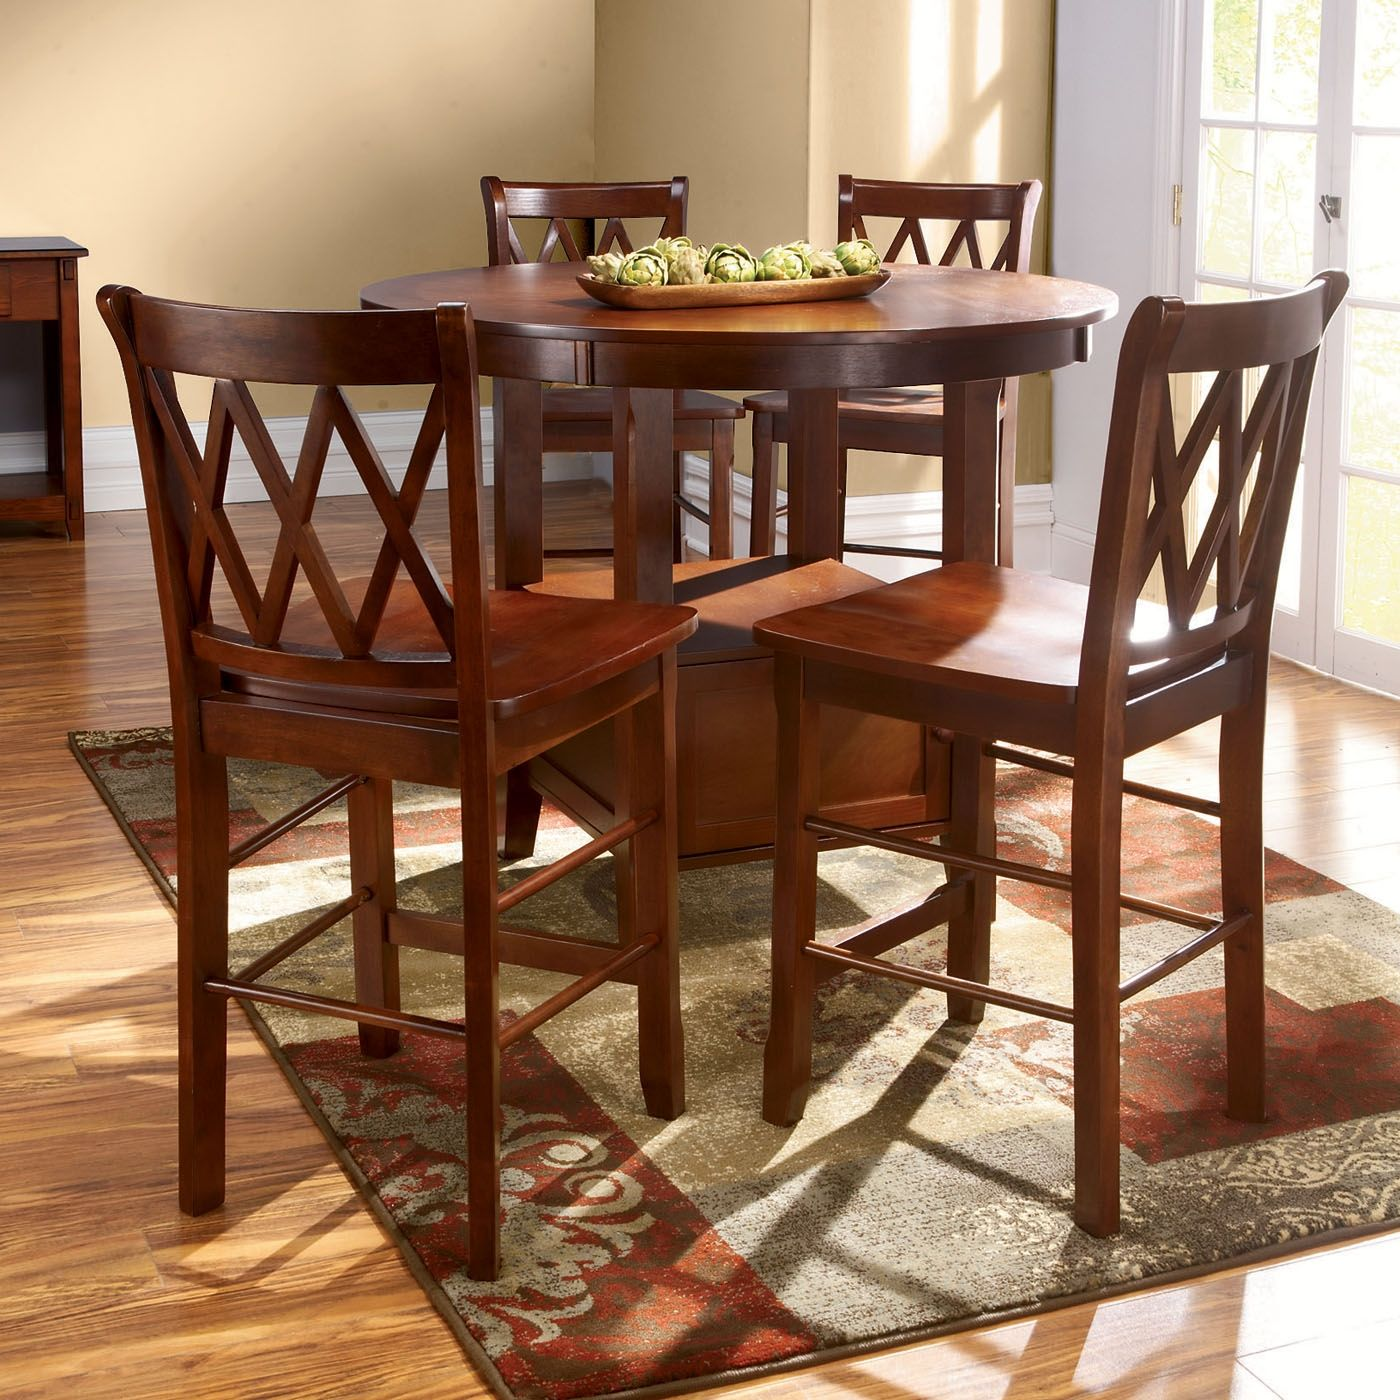 high top kitchen table set House Pinterest